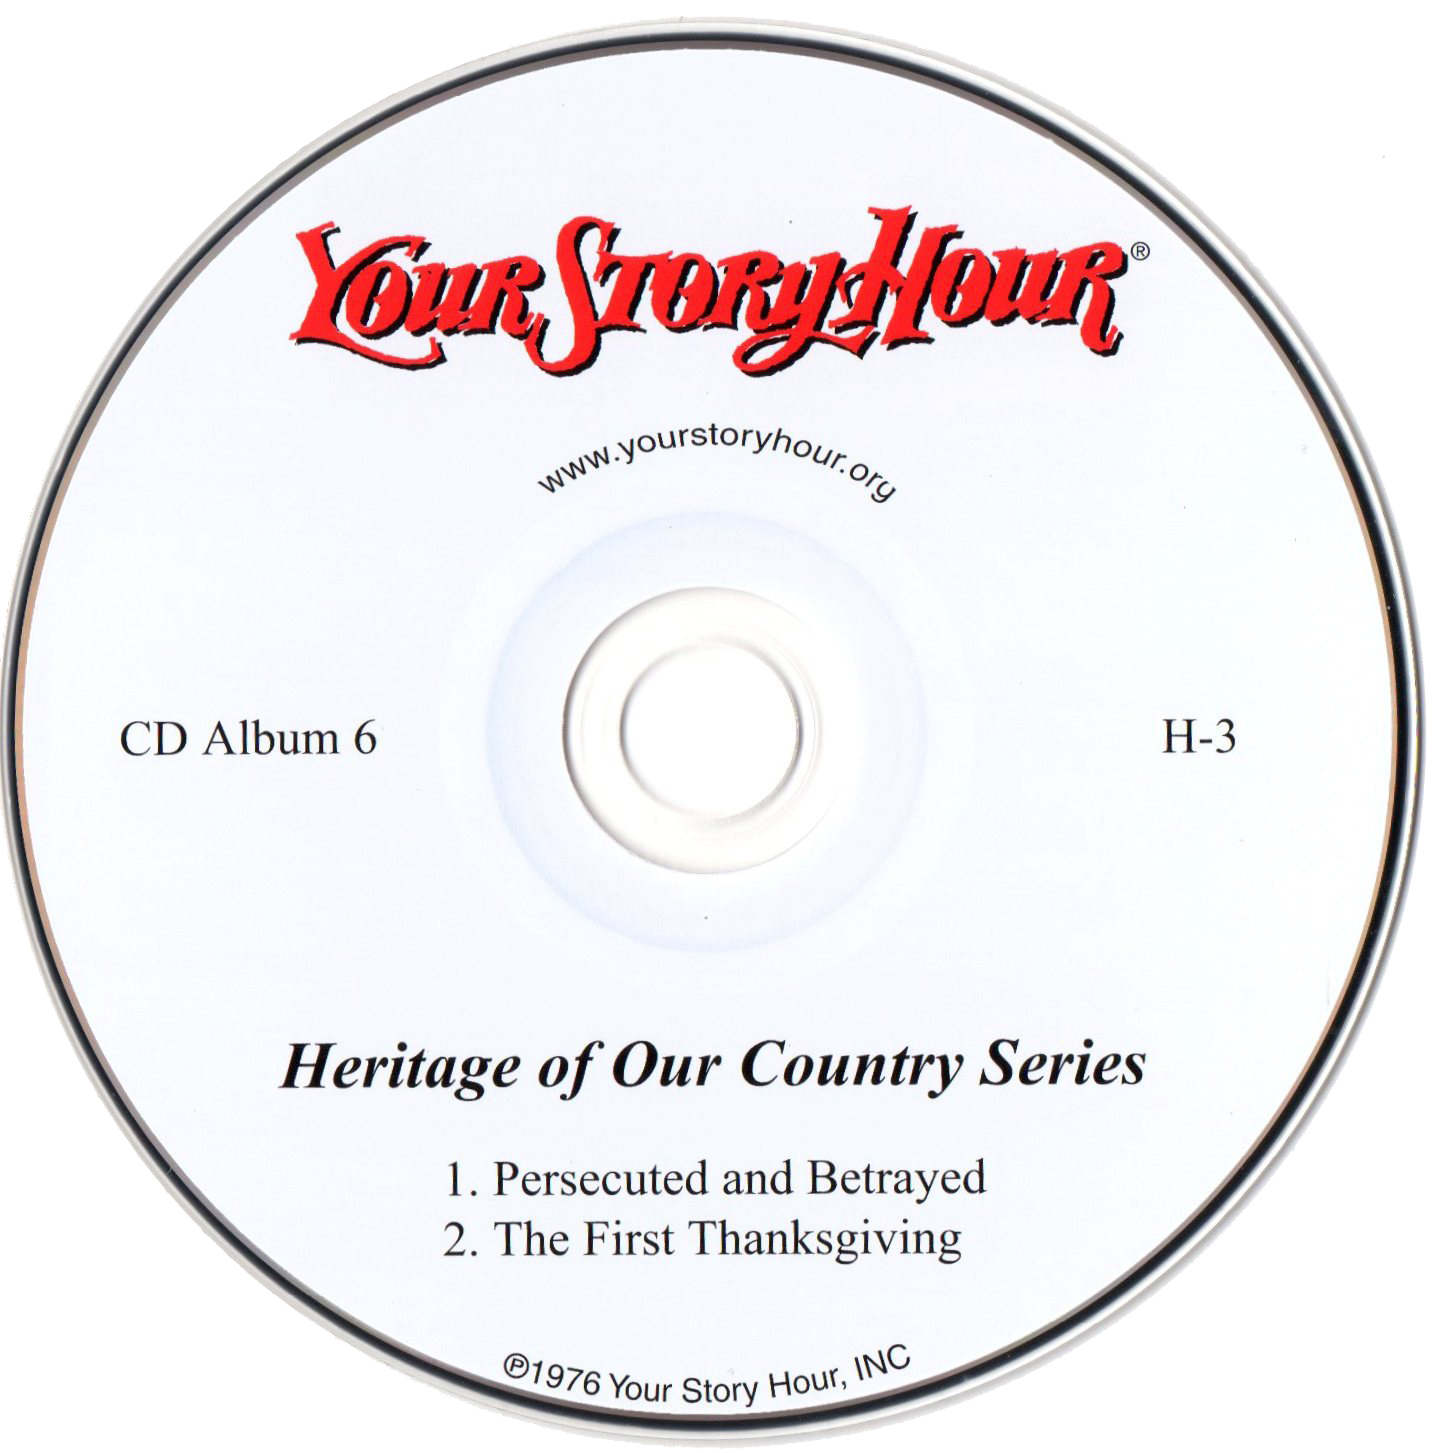 Your Story Hour (H3) CD